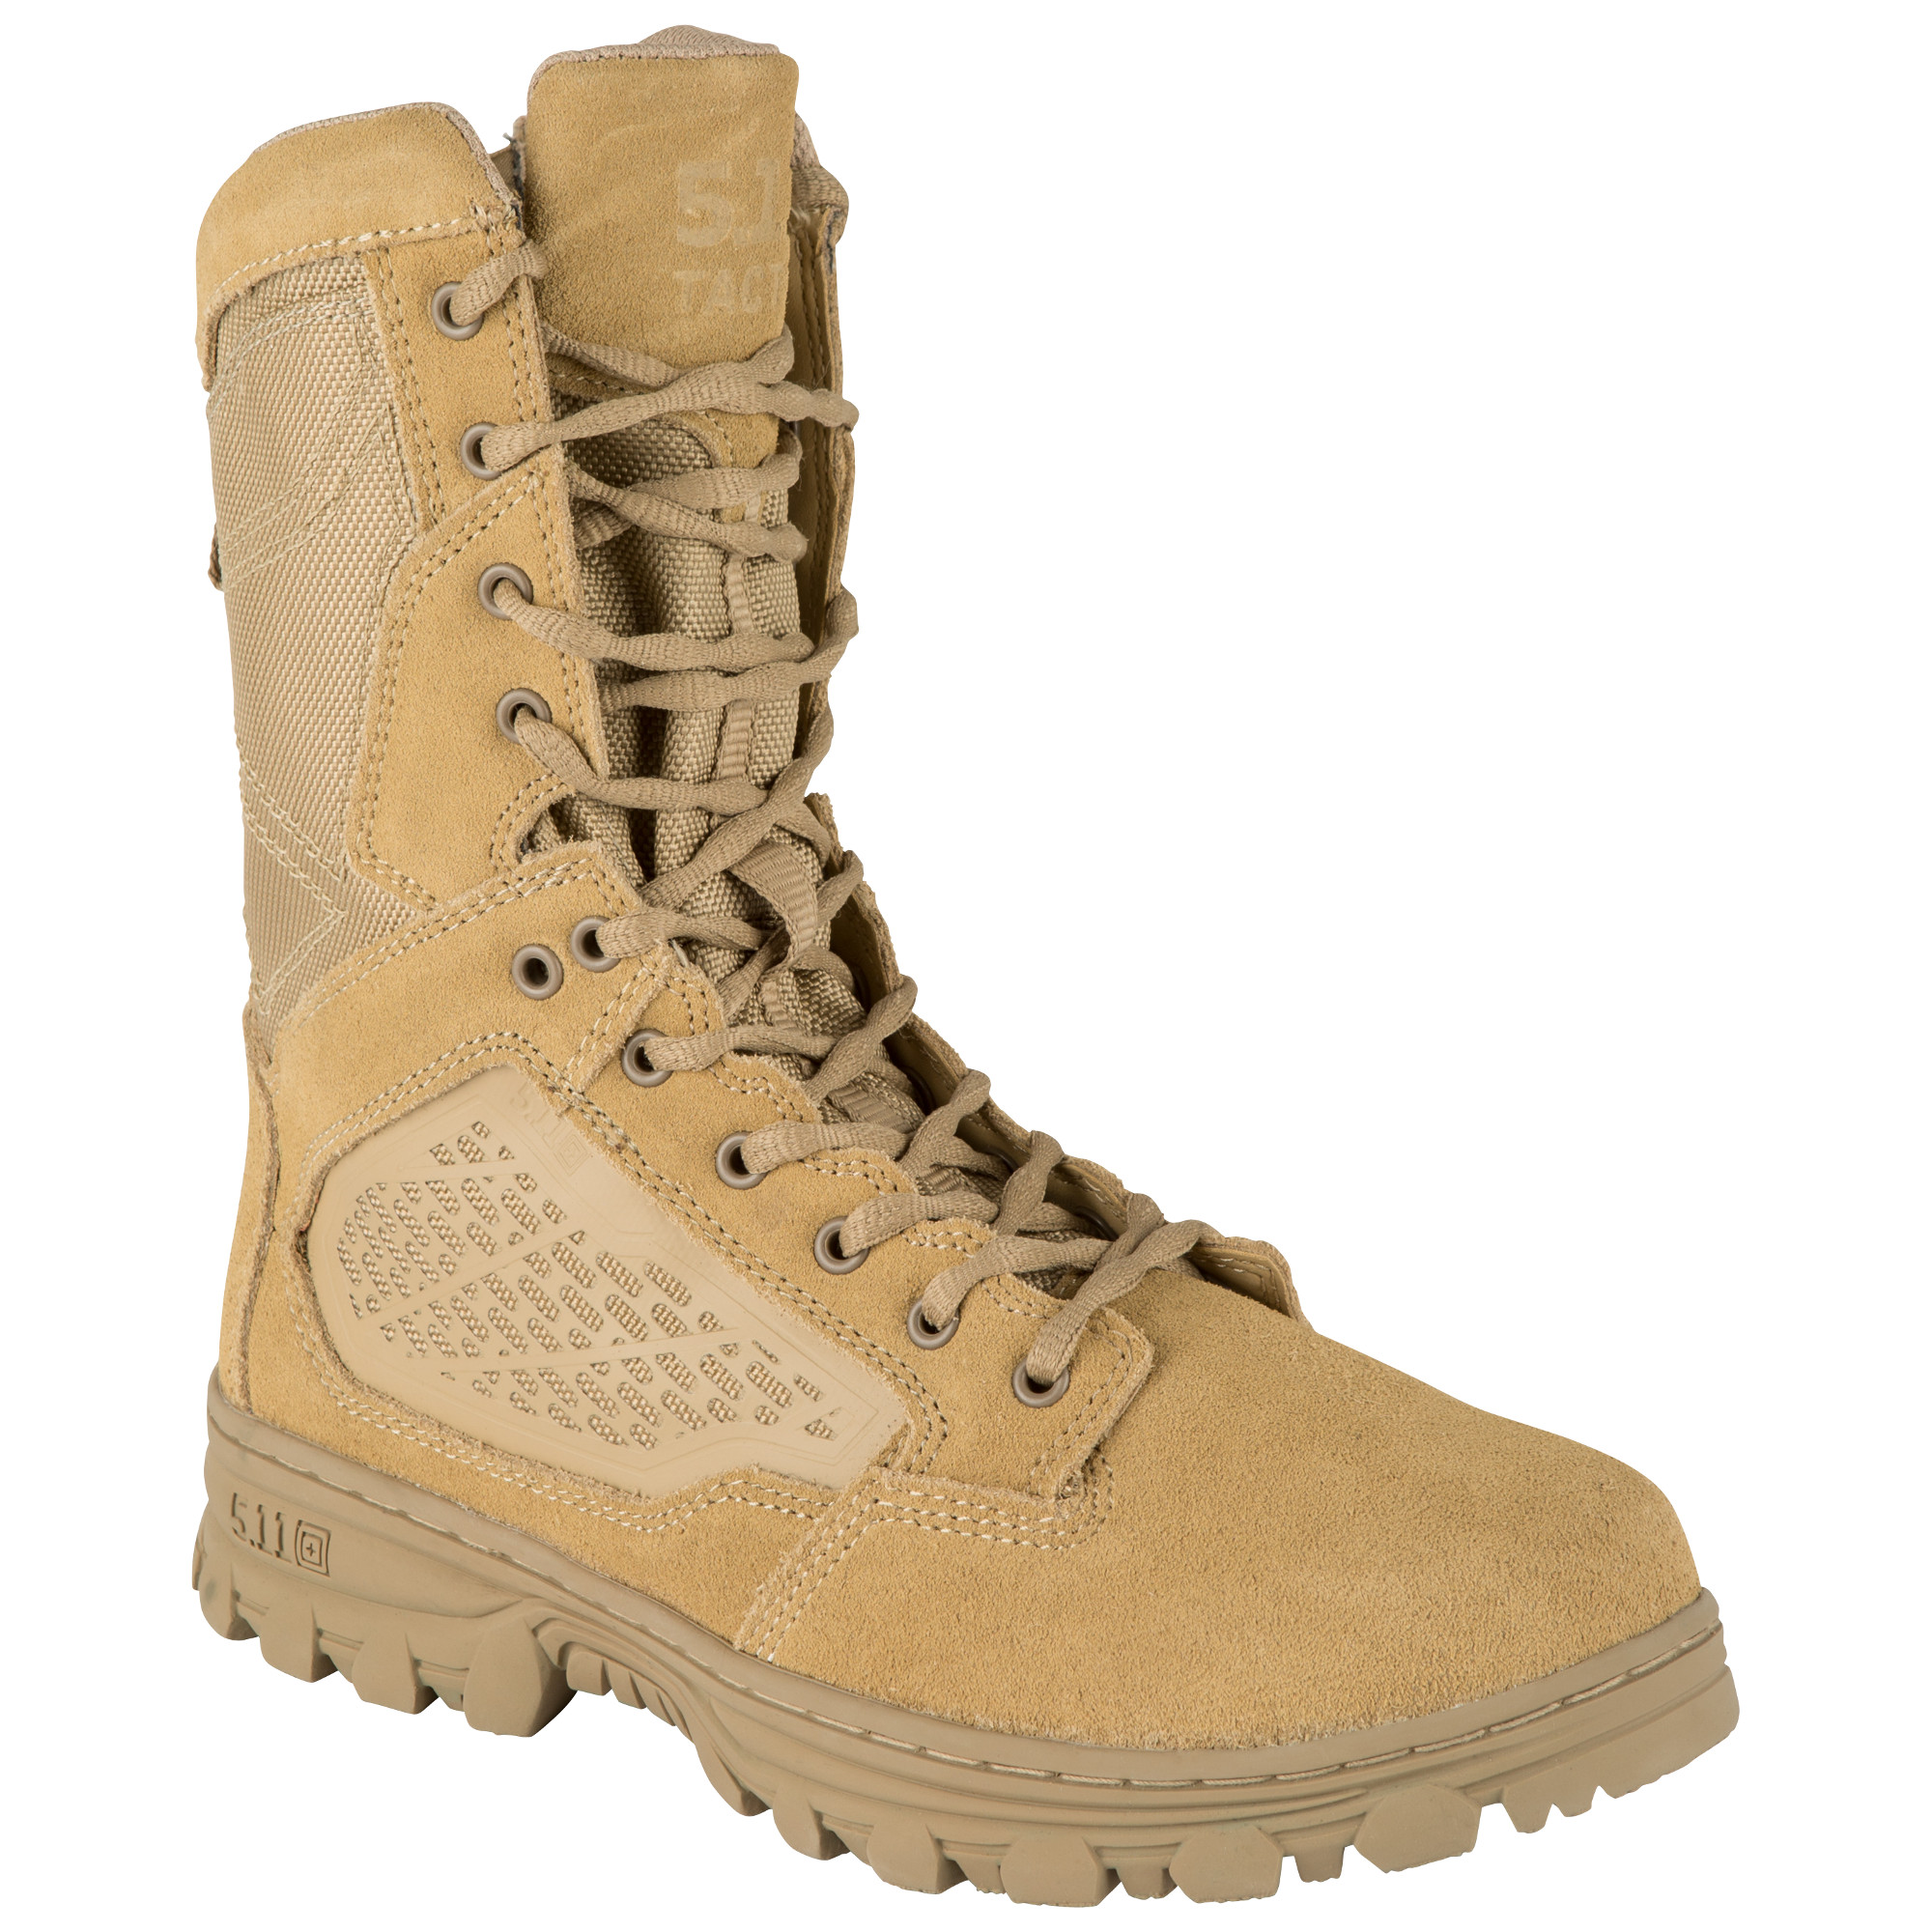 5.11 Tactical Men's EVO 8 Desert Side Zip Boot (Khaki/Tan) thumbnail